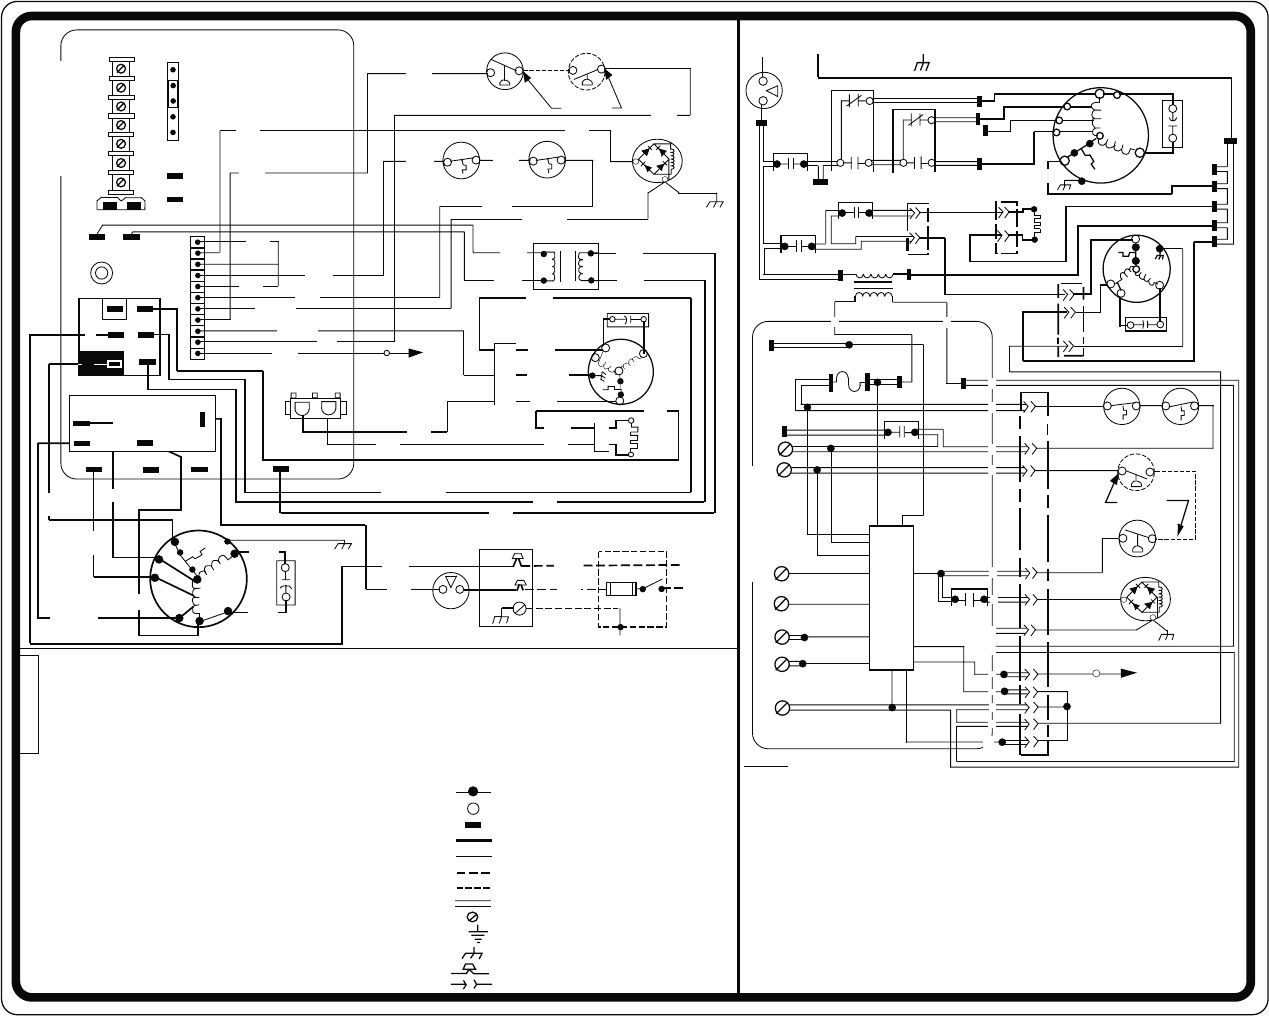 657389f9 036e 4126 bd31 50b039919328 bgc page 12 of bryant furnace 350mav user guide manualsonline com bryant furnace wiring diagram at crackthecode.co